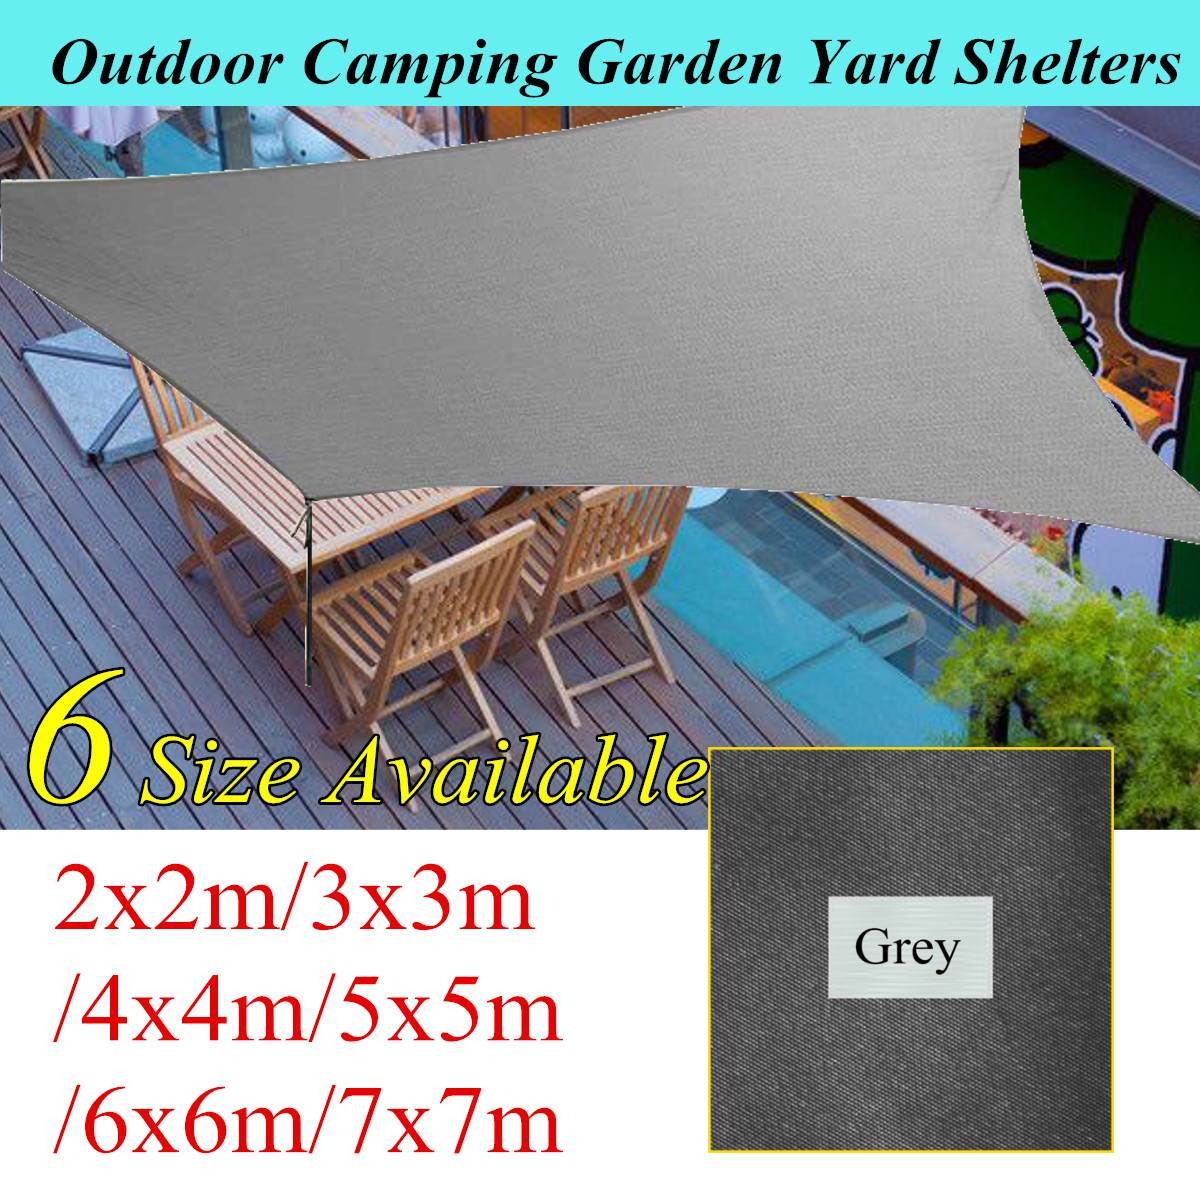 6 Sizes 90% UV Protection Waterproof Oxford Cloth Outdoor Sun Sunscreen Shade Sails Net Canopies Yard Garden Encrypted Canopy